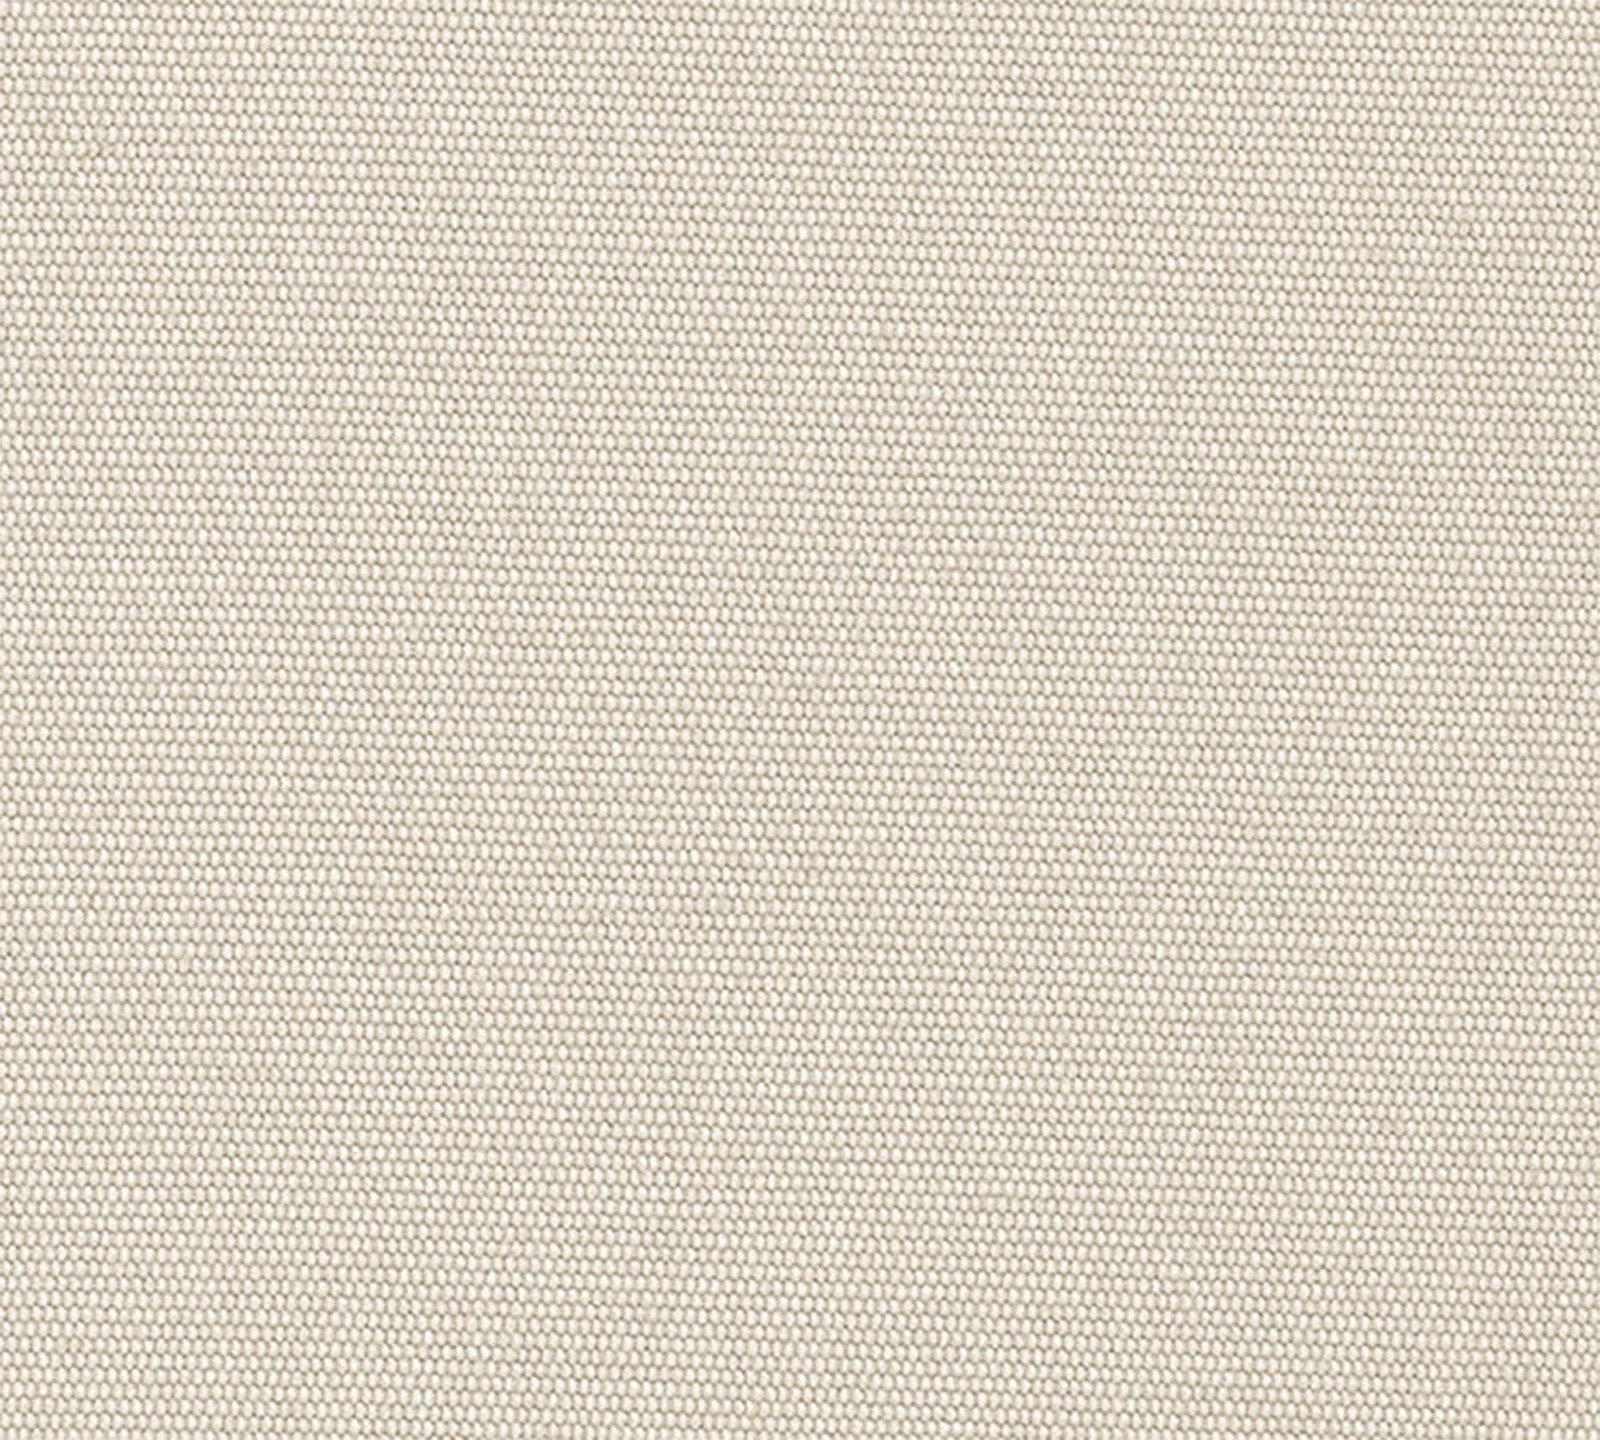 brushed canvas (2017) Pottery Barn This is one of an array of domestically sourced fabrics offered on the York Square Arm Deep Seat Sofa, a  recently introduced top-seller. Made in the company's factory in Hickory, North Carolina, the sofa takes about 15 days to produce and is touched by 30 craftspeople before completion.